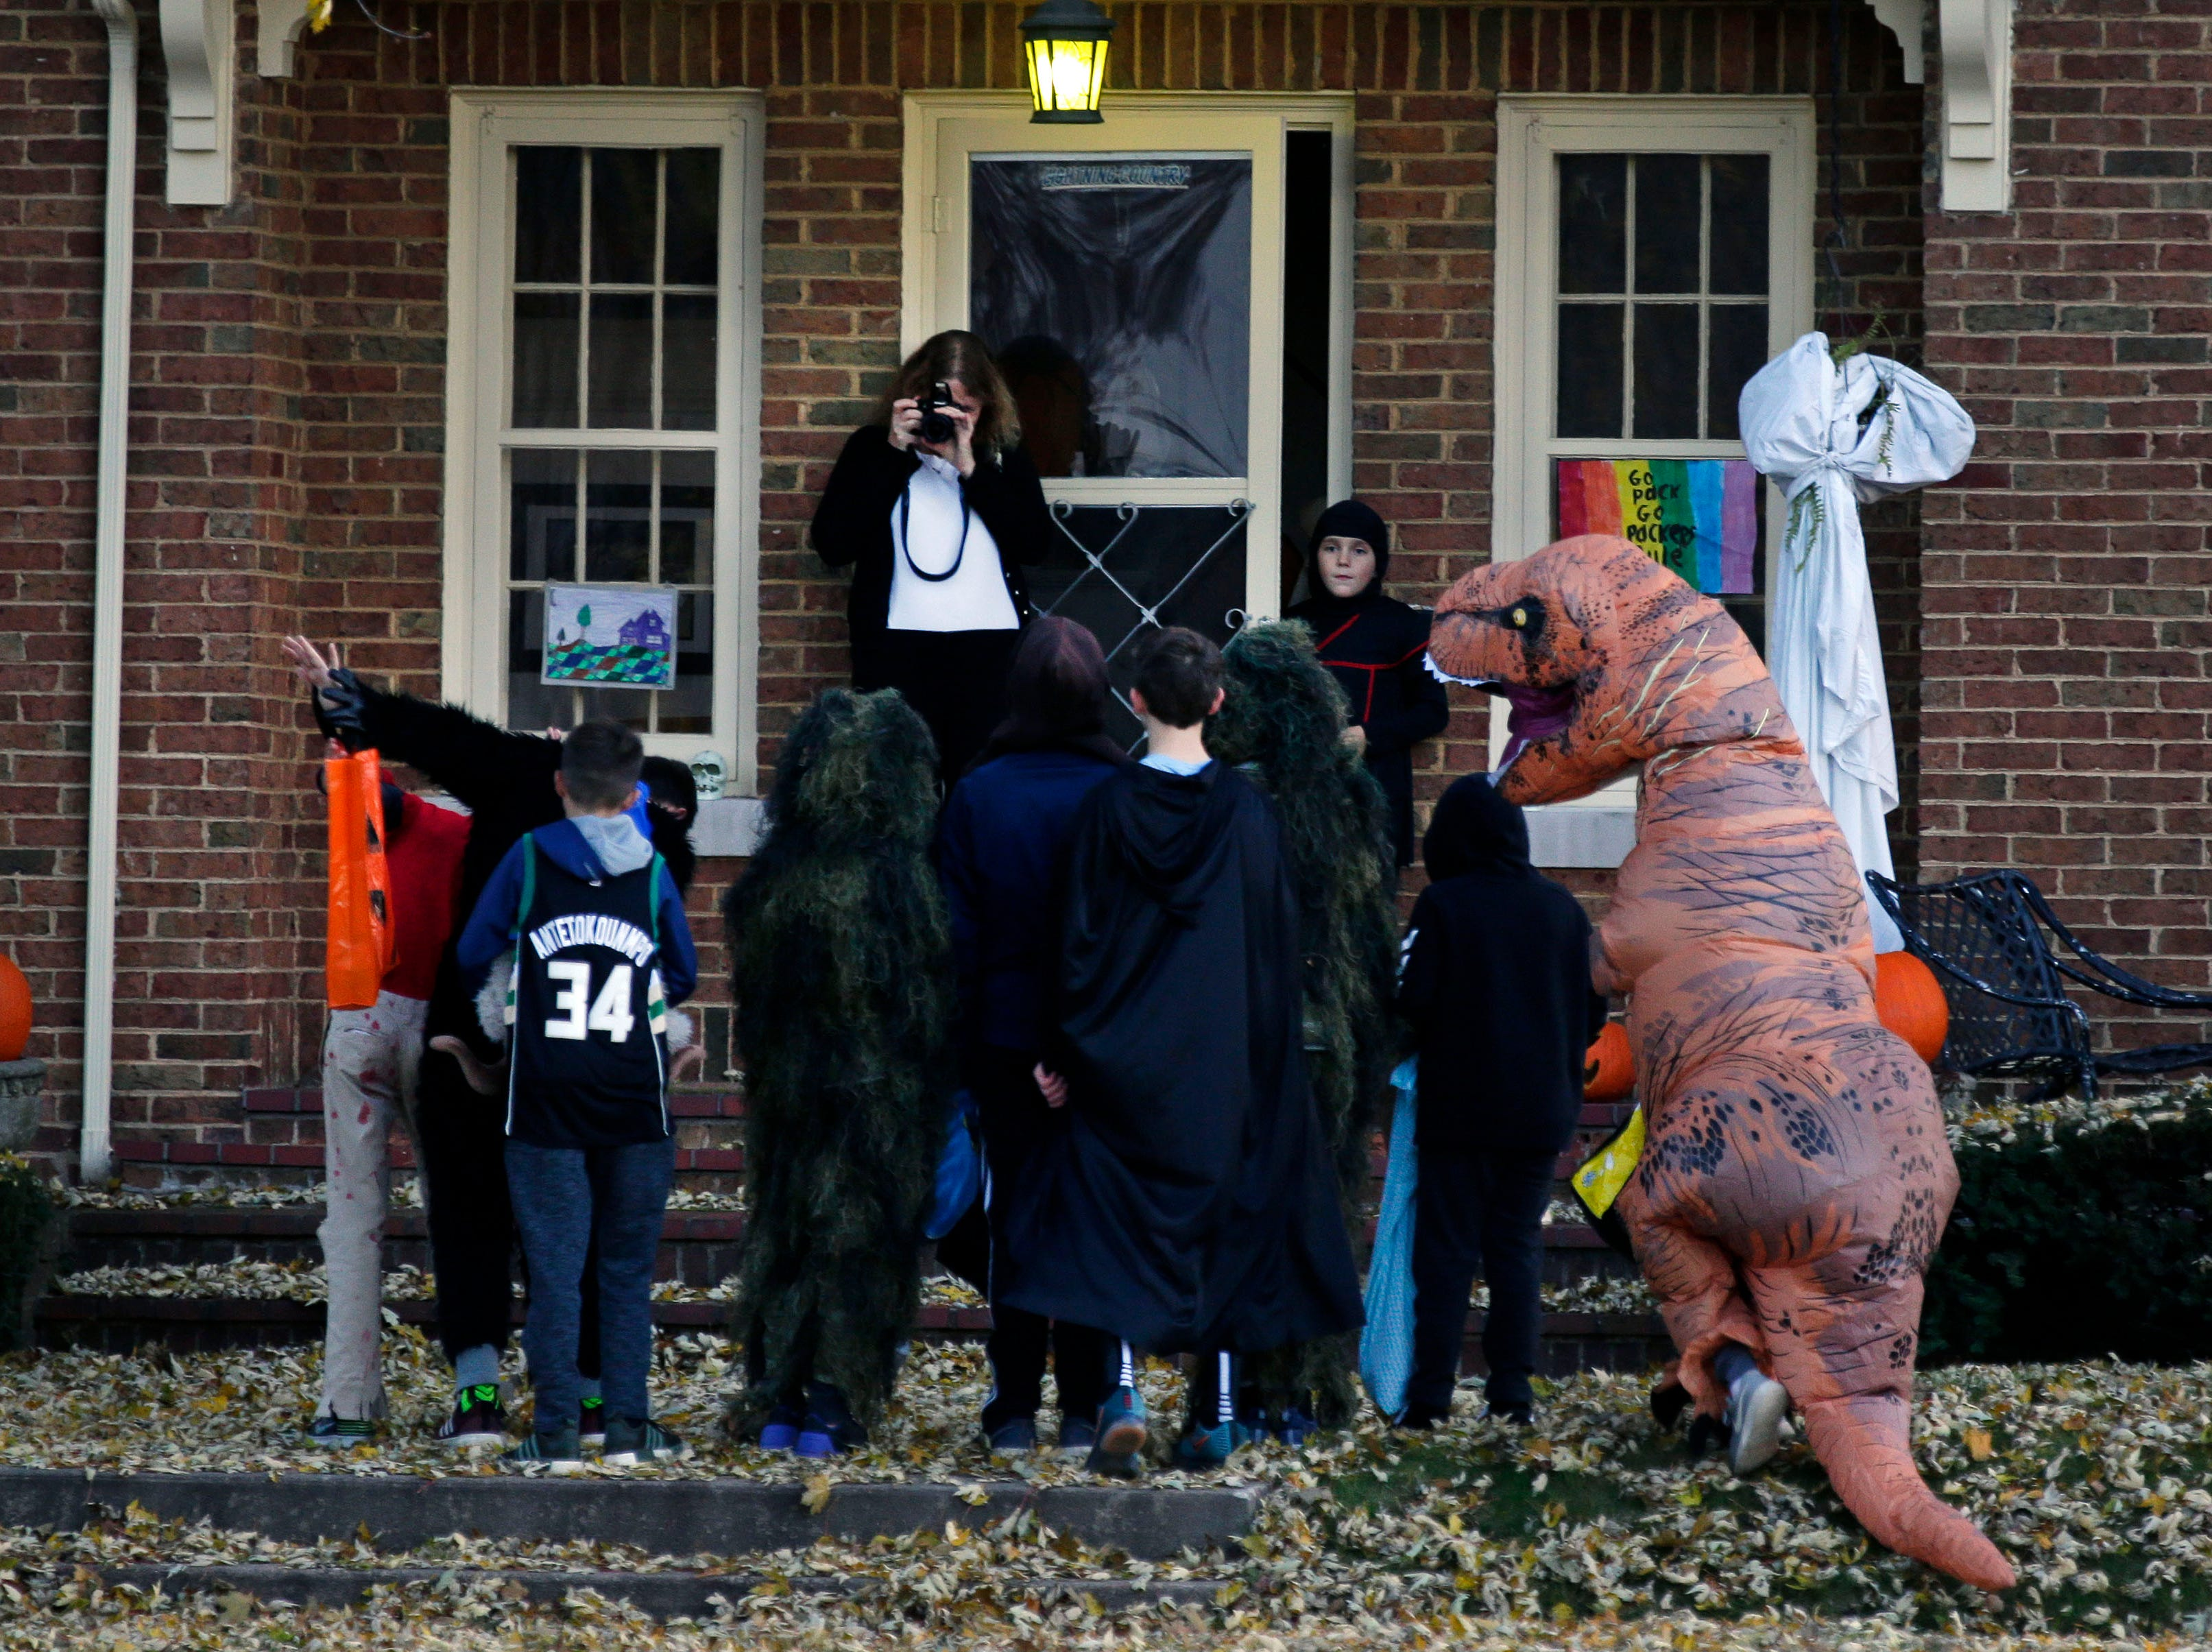 Laura Biskupic gets a photo of trick-or-treaters Wednesday, October 31, 2018, in Appleton, Wis.